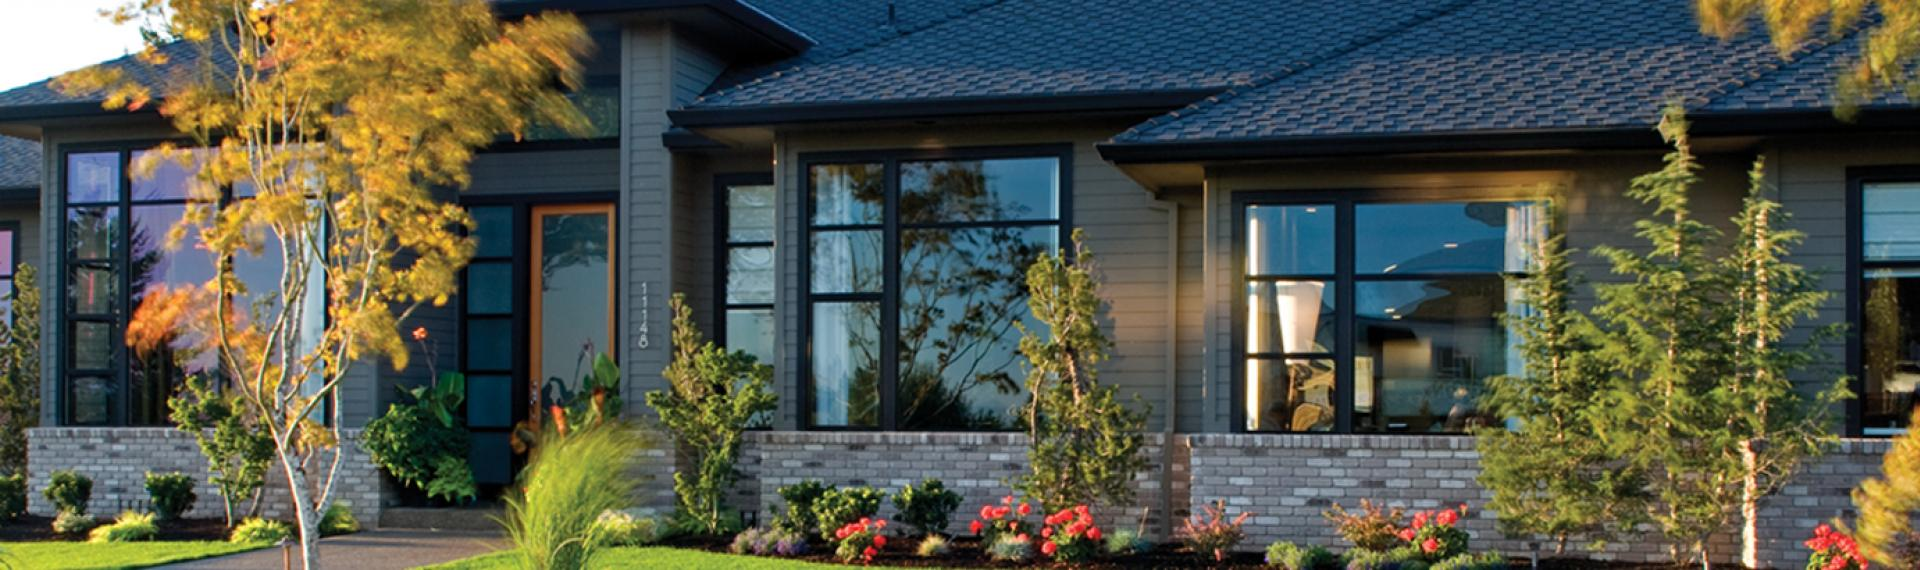 milgard windows utah doors aluminum windows doors window frames door milgard